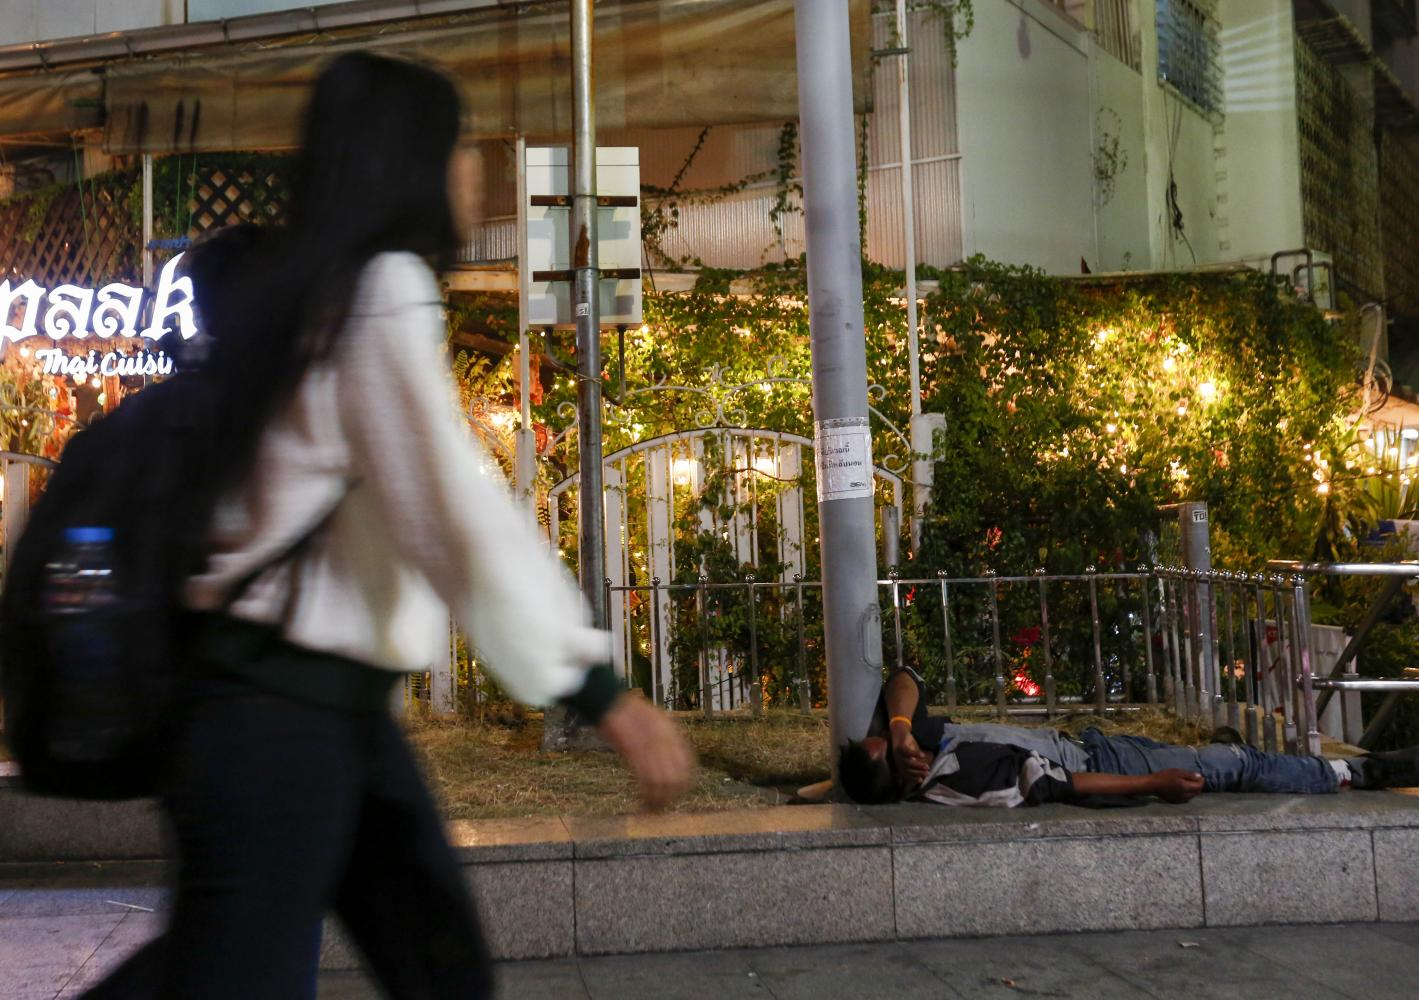 A woman walks past a homeless man in Bangkok. Thailand's inequality is among the highest in the world. (Photo by Pattarapong Chatpattarasill)